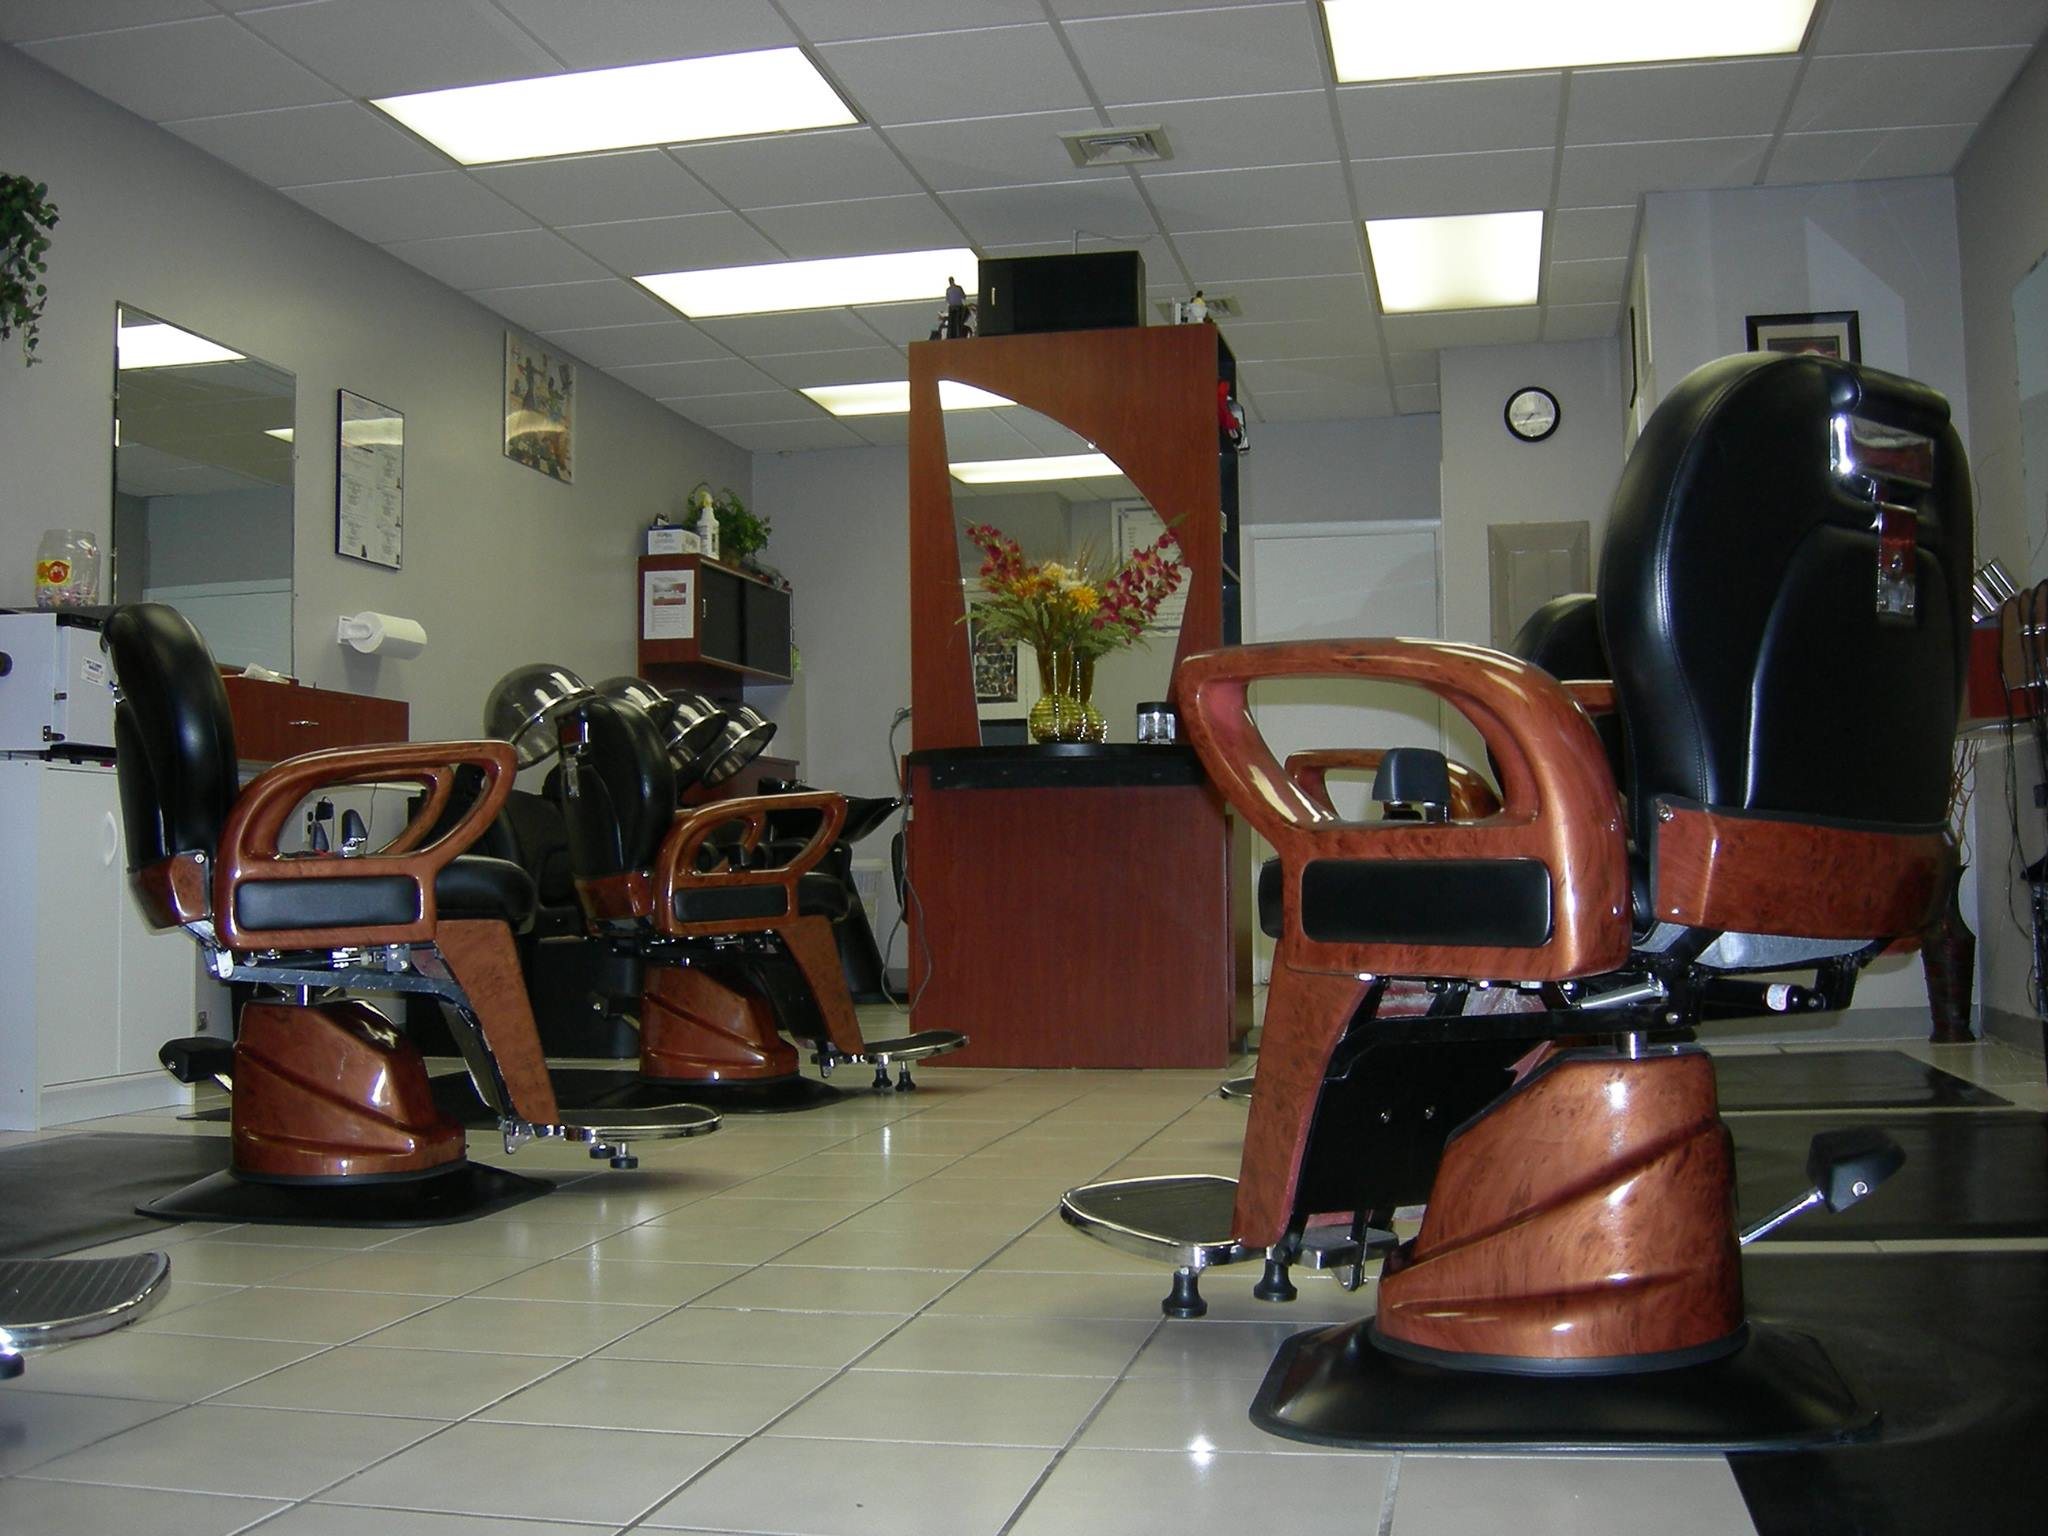 District of Columbia's Top Rated Local® Barber Shops Award Winner: My 3 Sons Unisex / Barber Shop